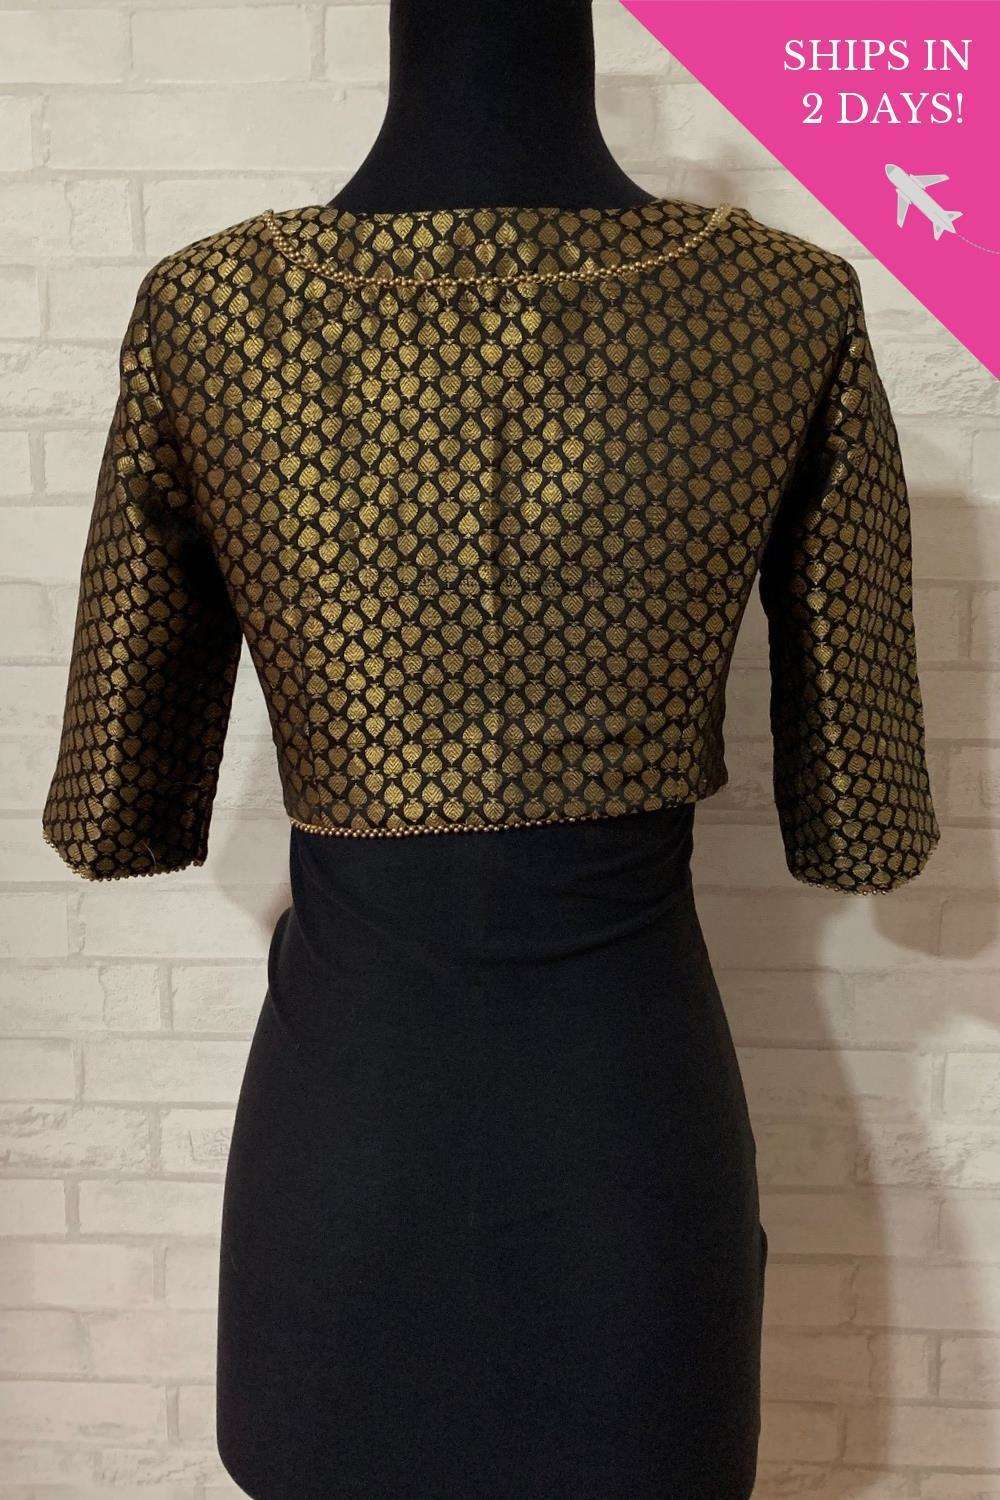 Black brocade blouse with cutout at neck; Size: 34 - House of Blouse